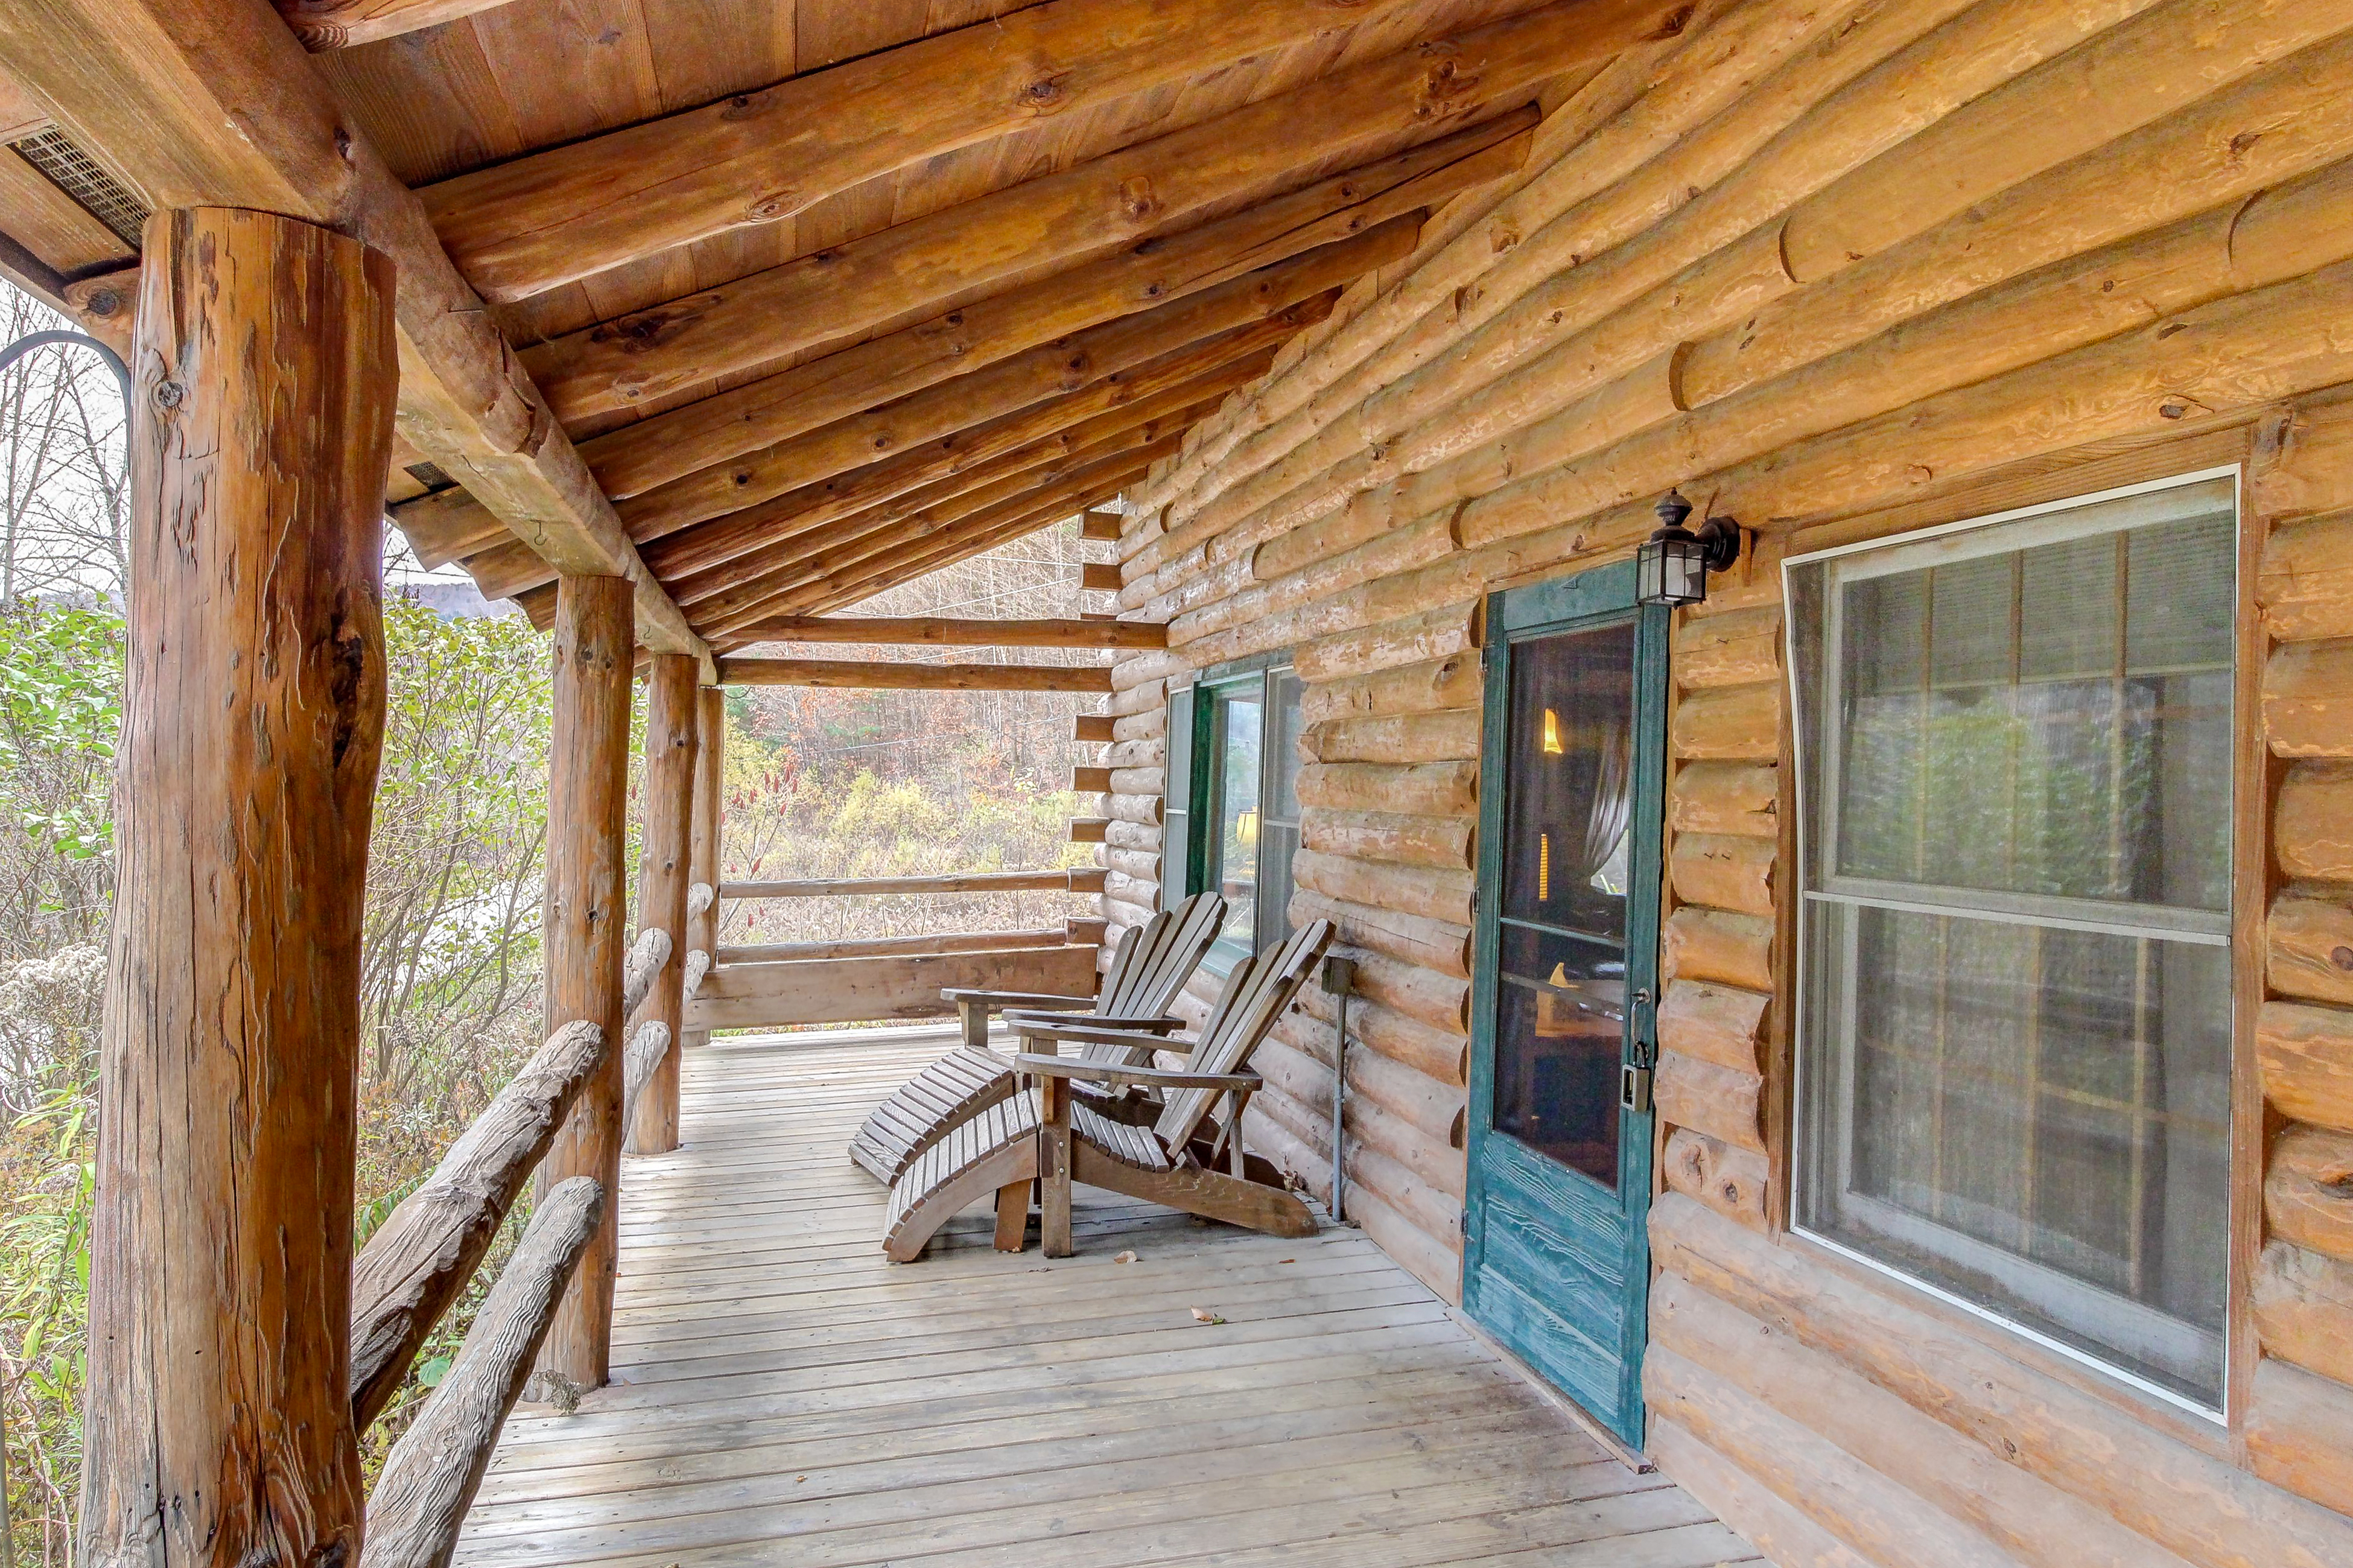 wild cheap cabin garden cabins rose of cottage bellows rentals lovely charming vermont big bear